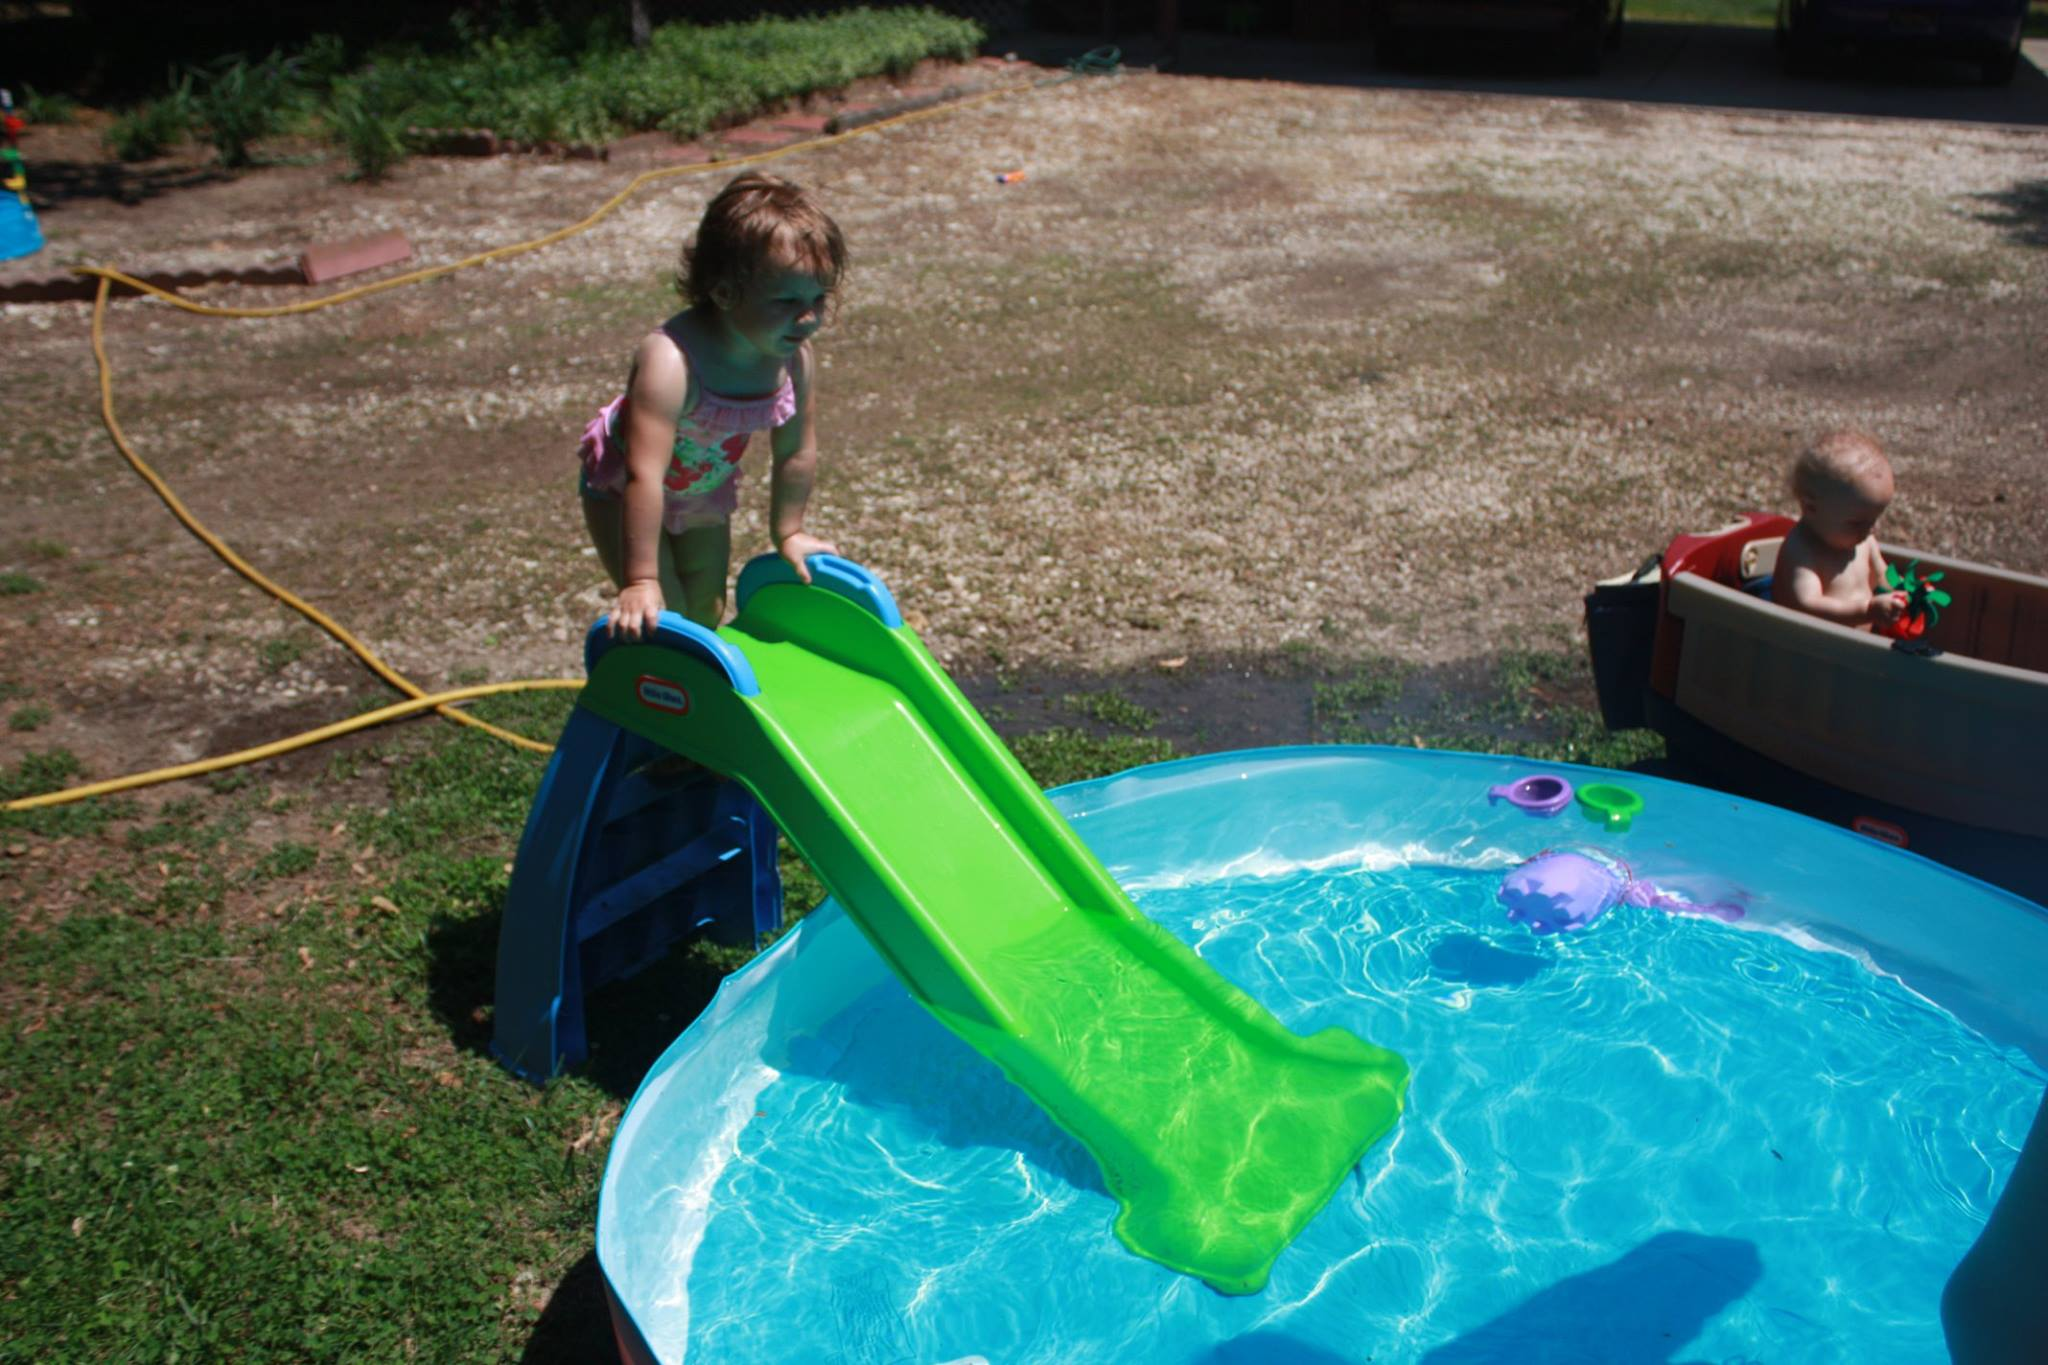 We Decided To Add The Slide For Even More Fun. The Baby Was Happy Just  Dipping His Feet In The Pool And Playing With The Toys. The Whole Family  Had A Very ...